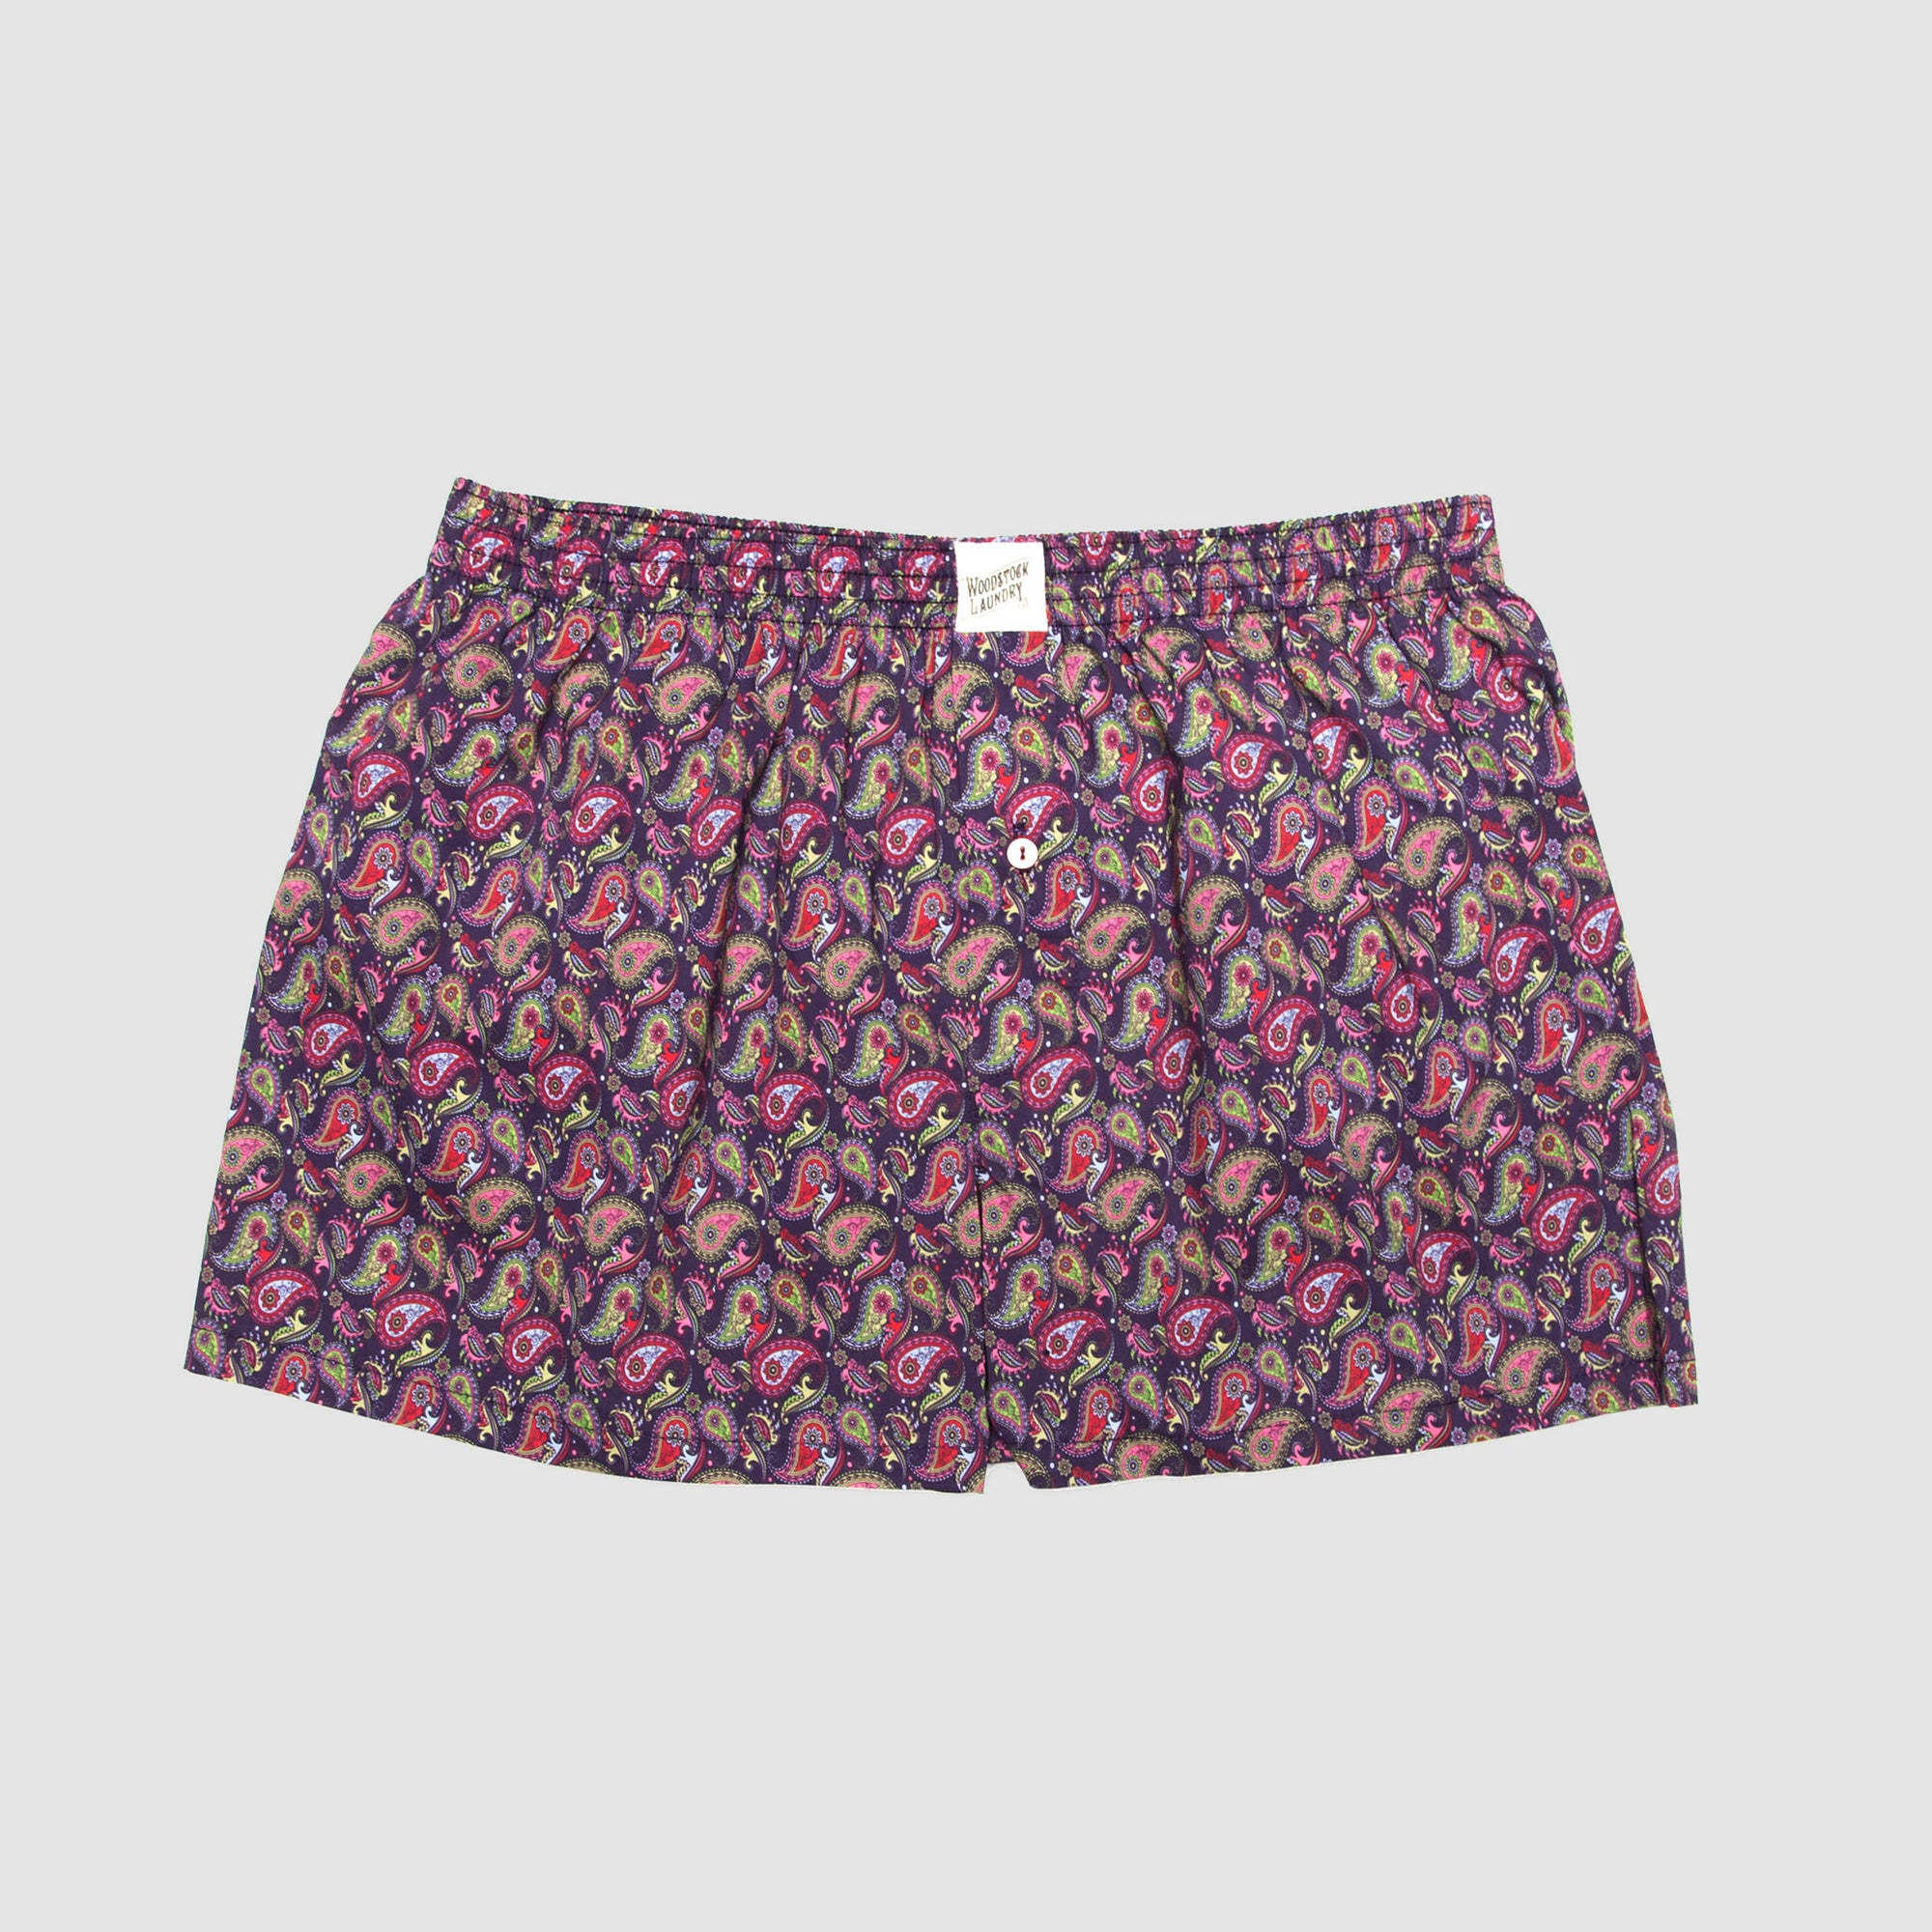 Mens Boxer Shorts Paisley Bright - Woodstock Laundry